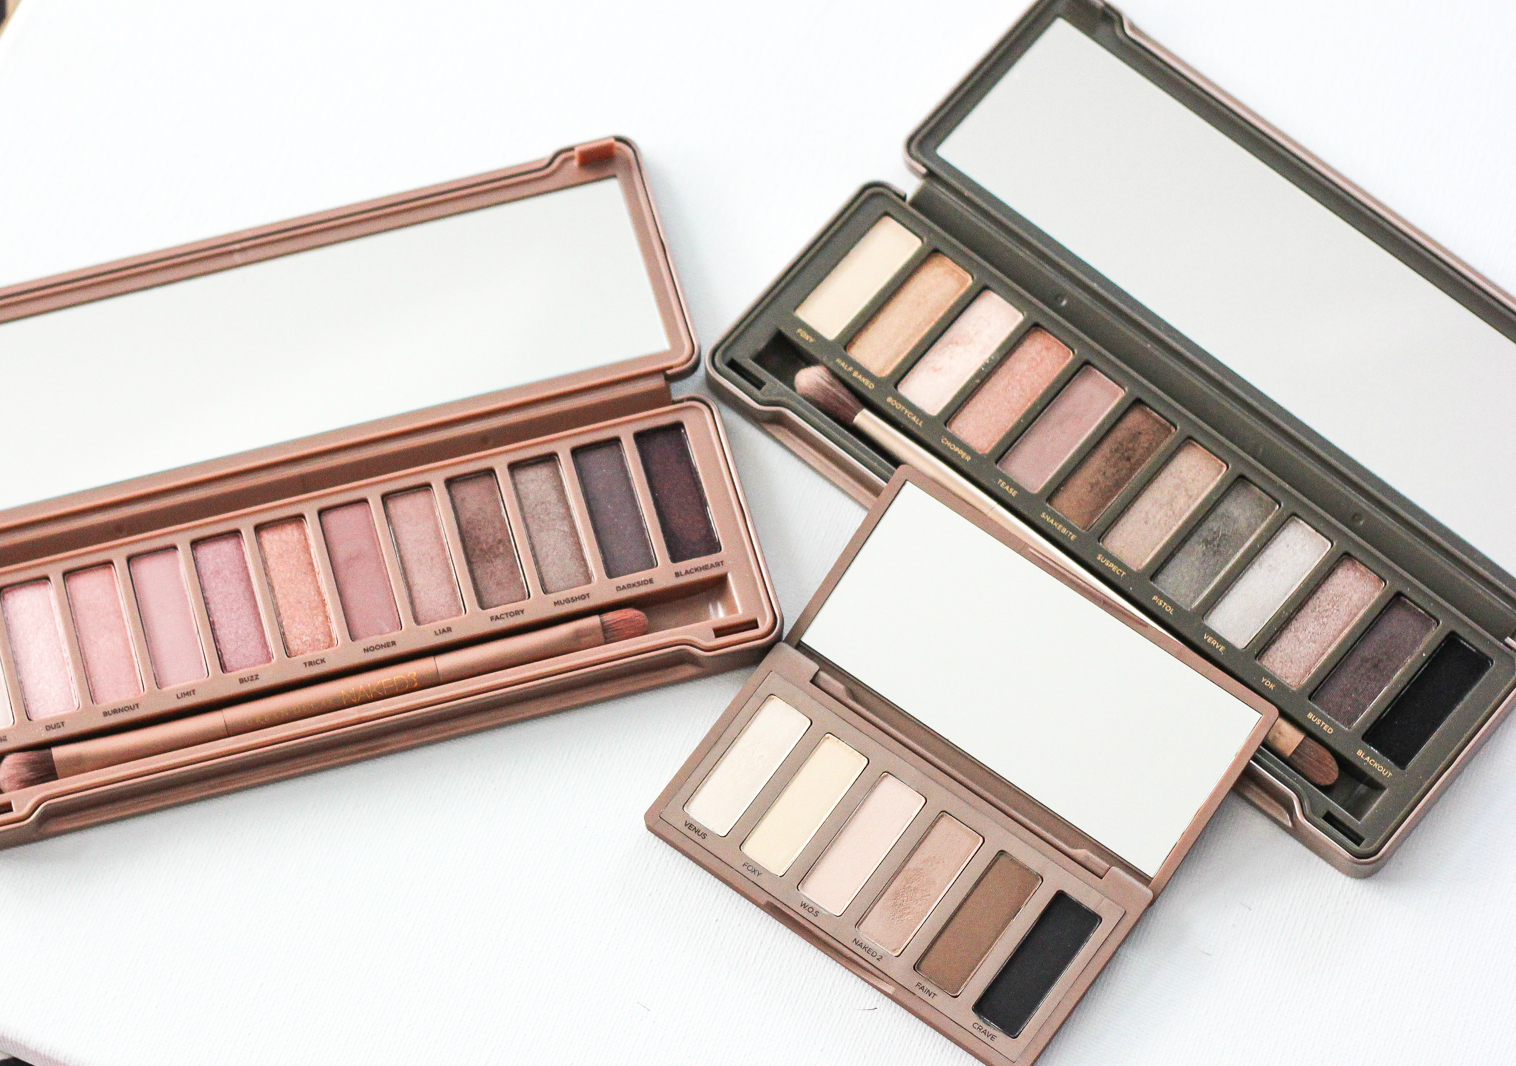 Review: The Urban Decay Naked Basics Palette | Jackie O My